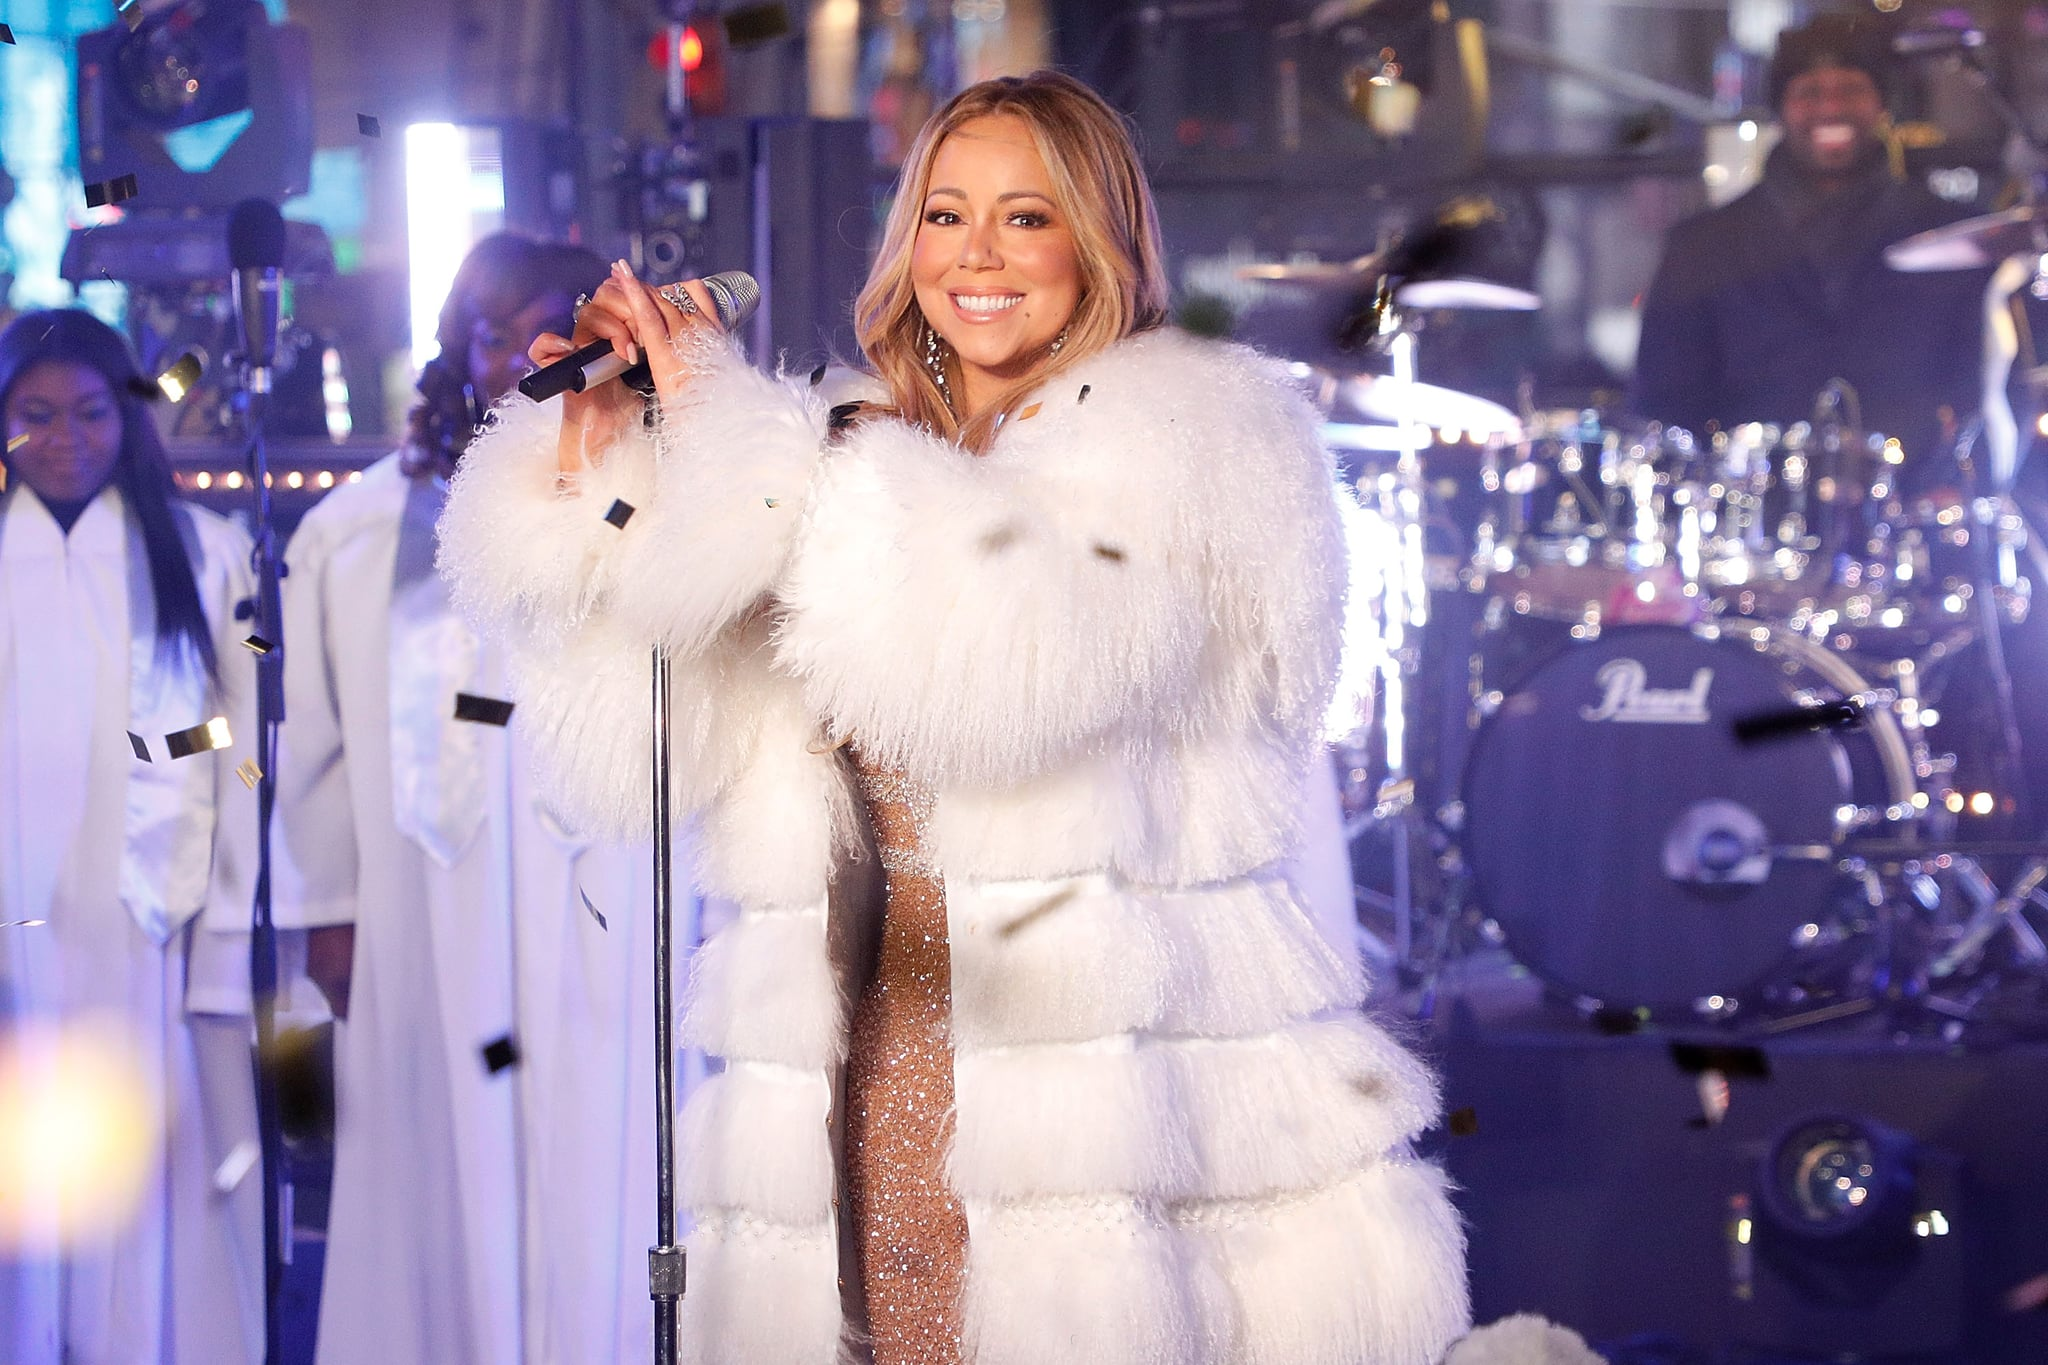 NEW YORK, NY - DECEMBER 31:  Mariah Carey performs during Dick Clark's New Year's Rockin' Eve at Times Square on December 31, 2017 in New York City.  (Photo by Taylor Hill/FilmMagic)